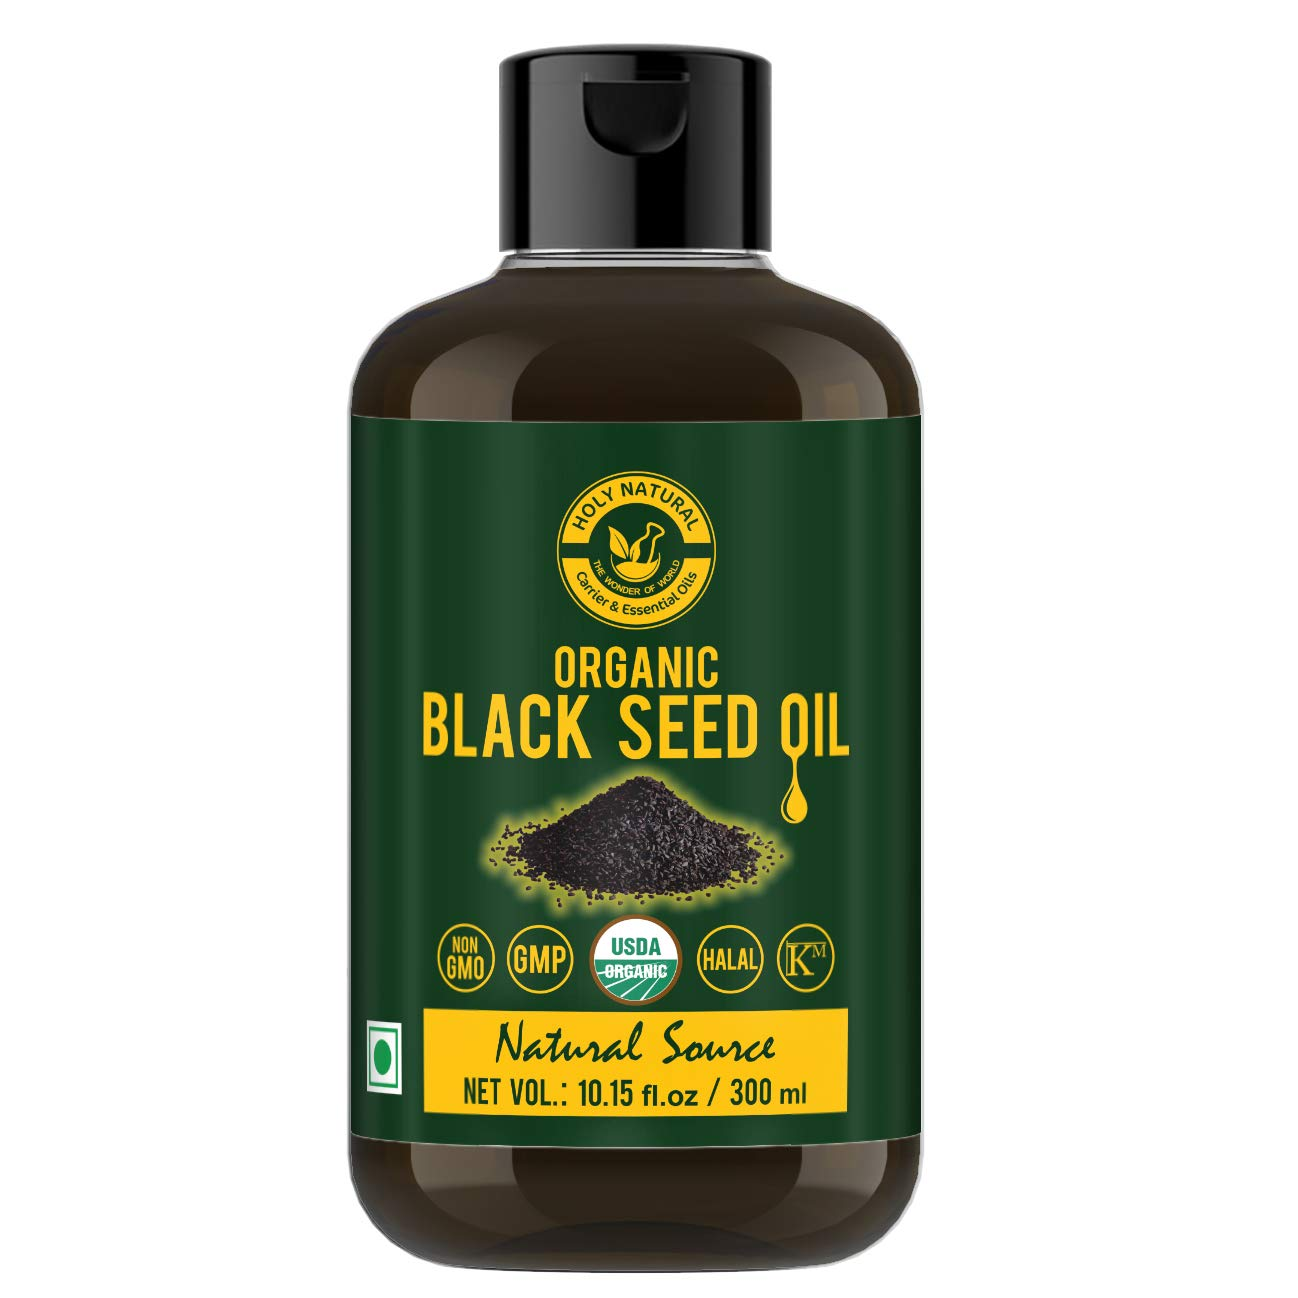 Holy Natural - The Wonder of World USDA Certified, Virgin Cold-Pressed Natural, No GMO, Untreated Organic Black Seed/Nigella Sativa/Kalonji Seeds Oil (300 ml)